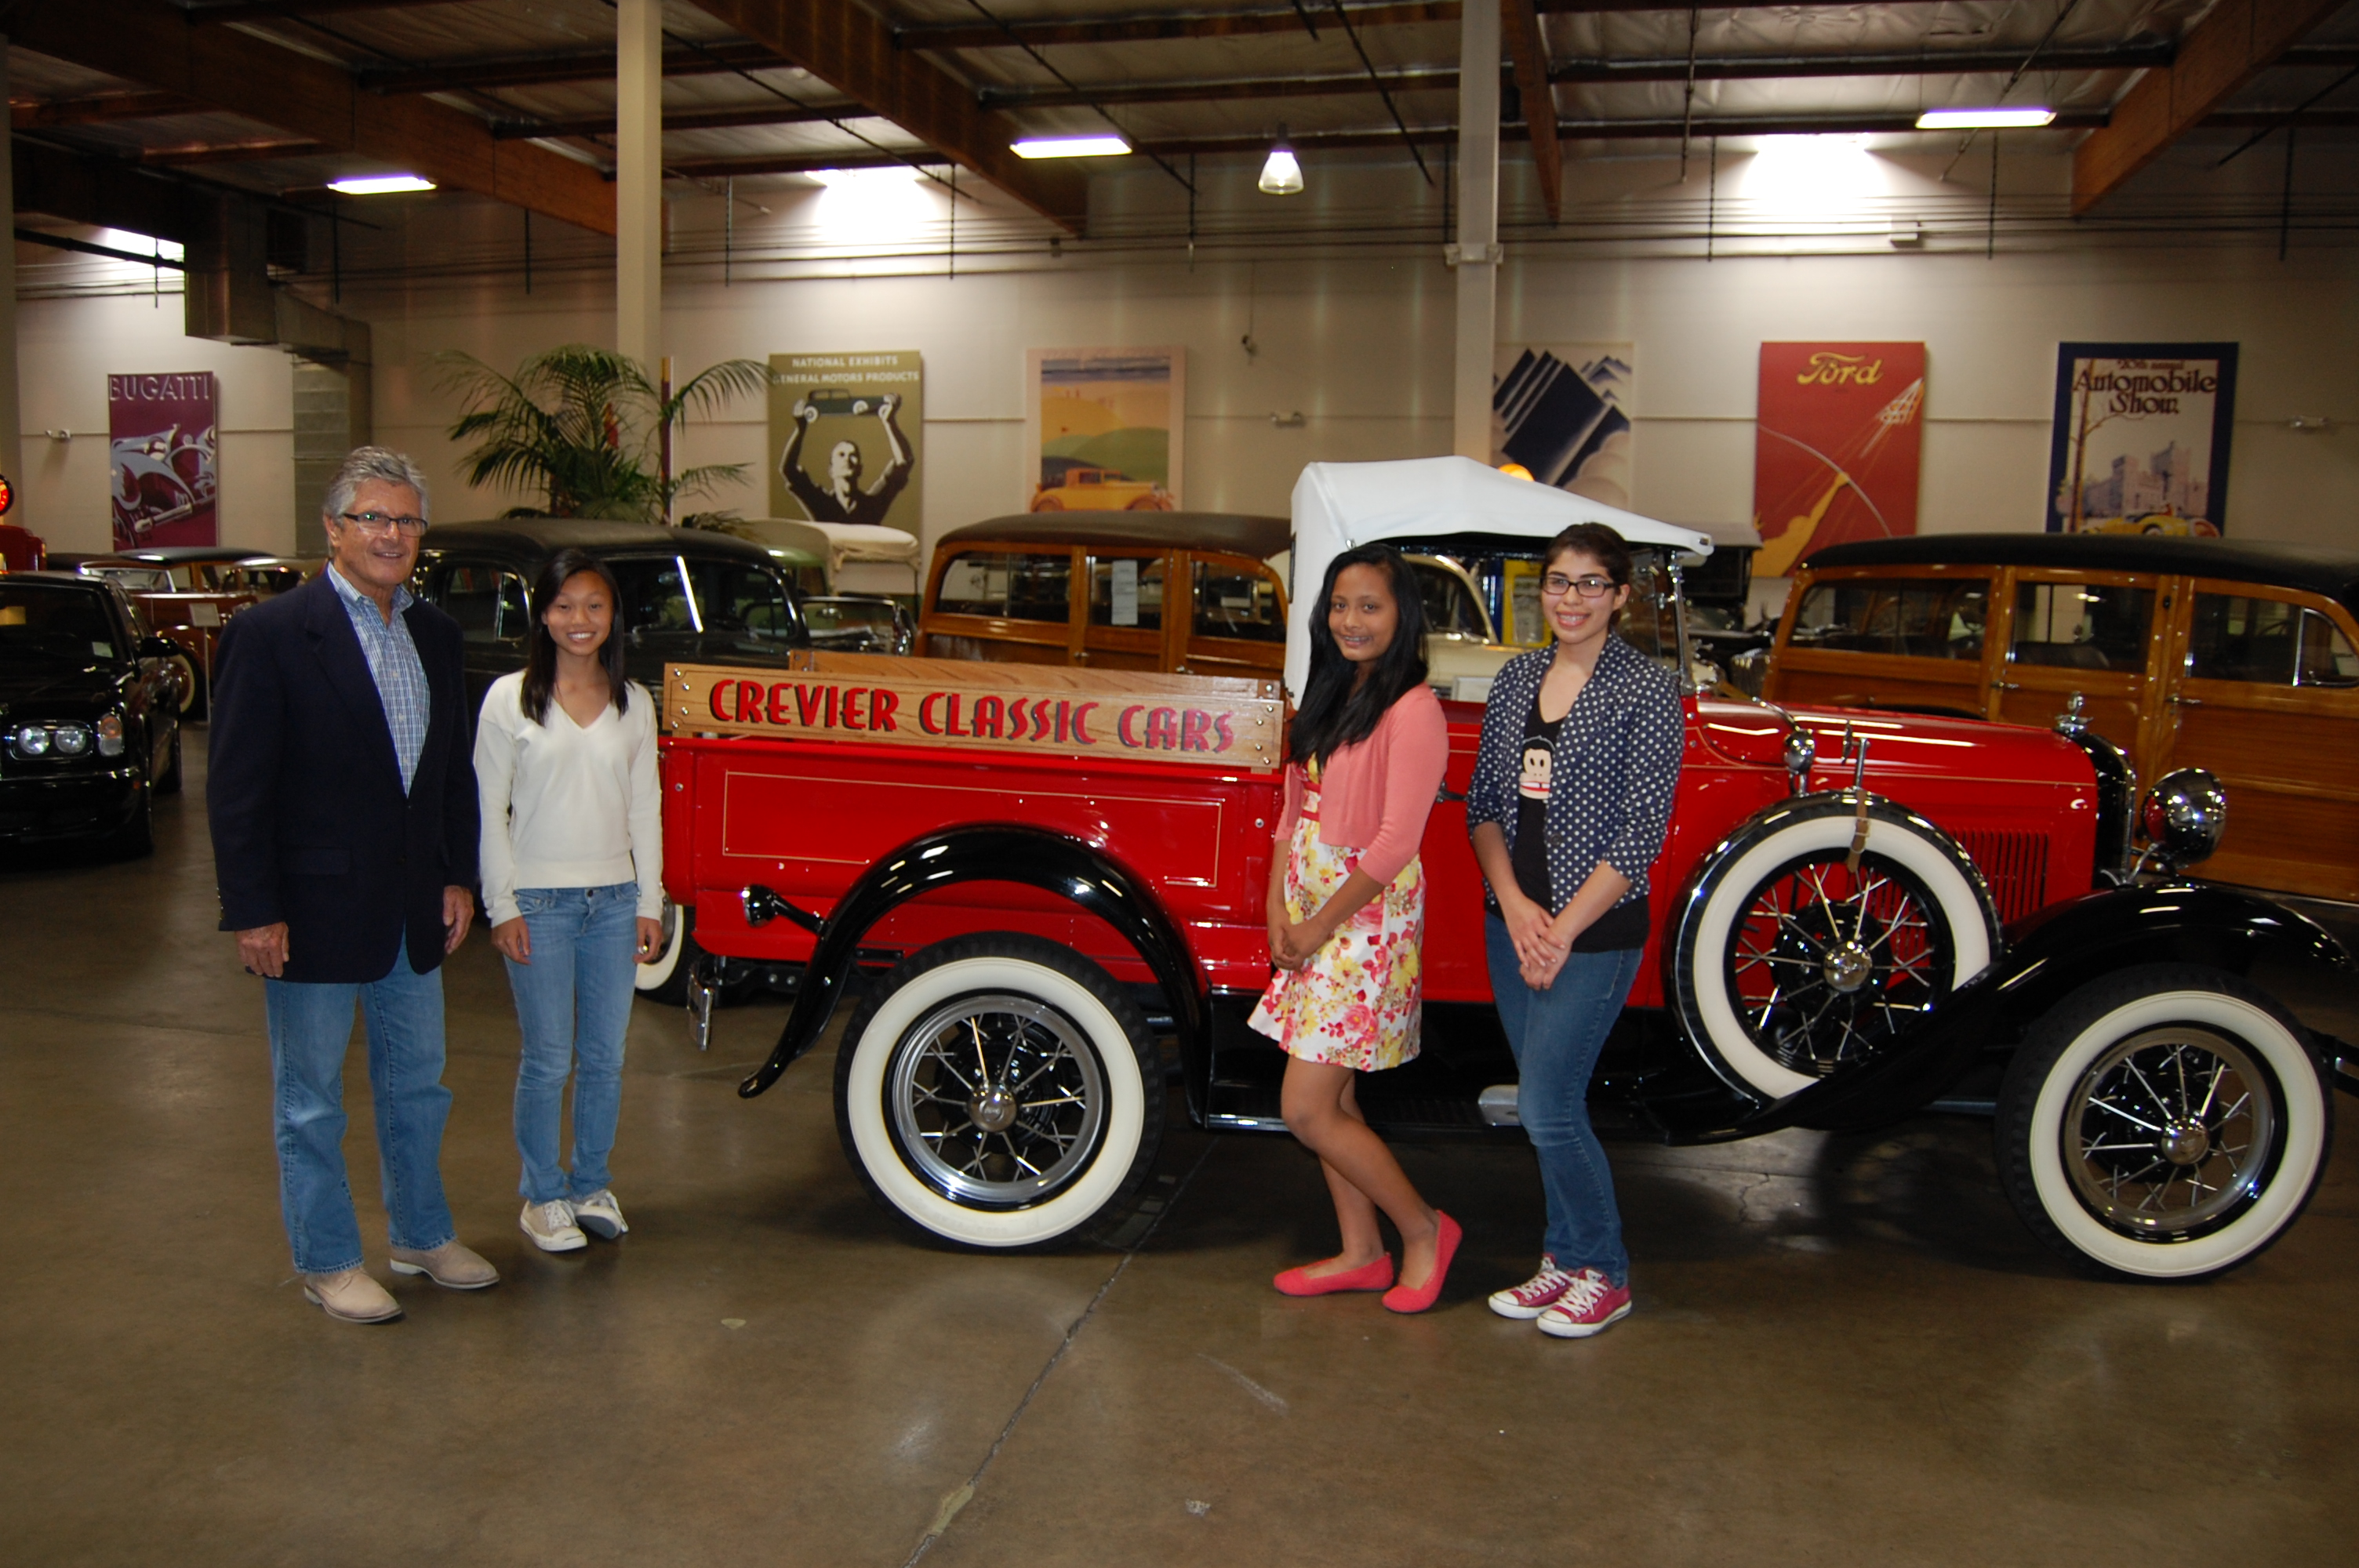 Crevier Classic Cars | OC Human Relations